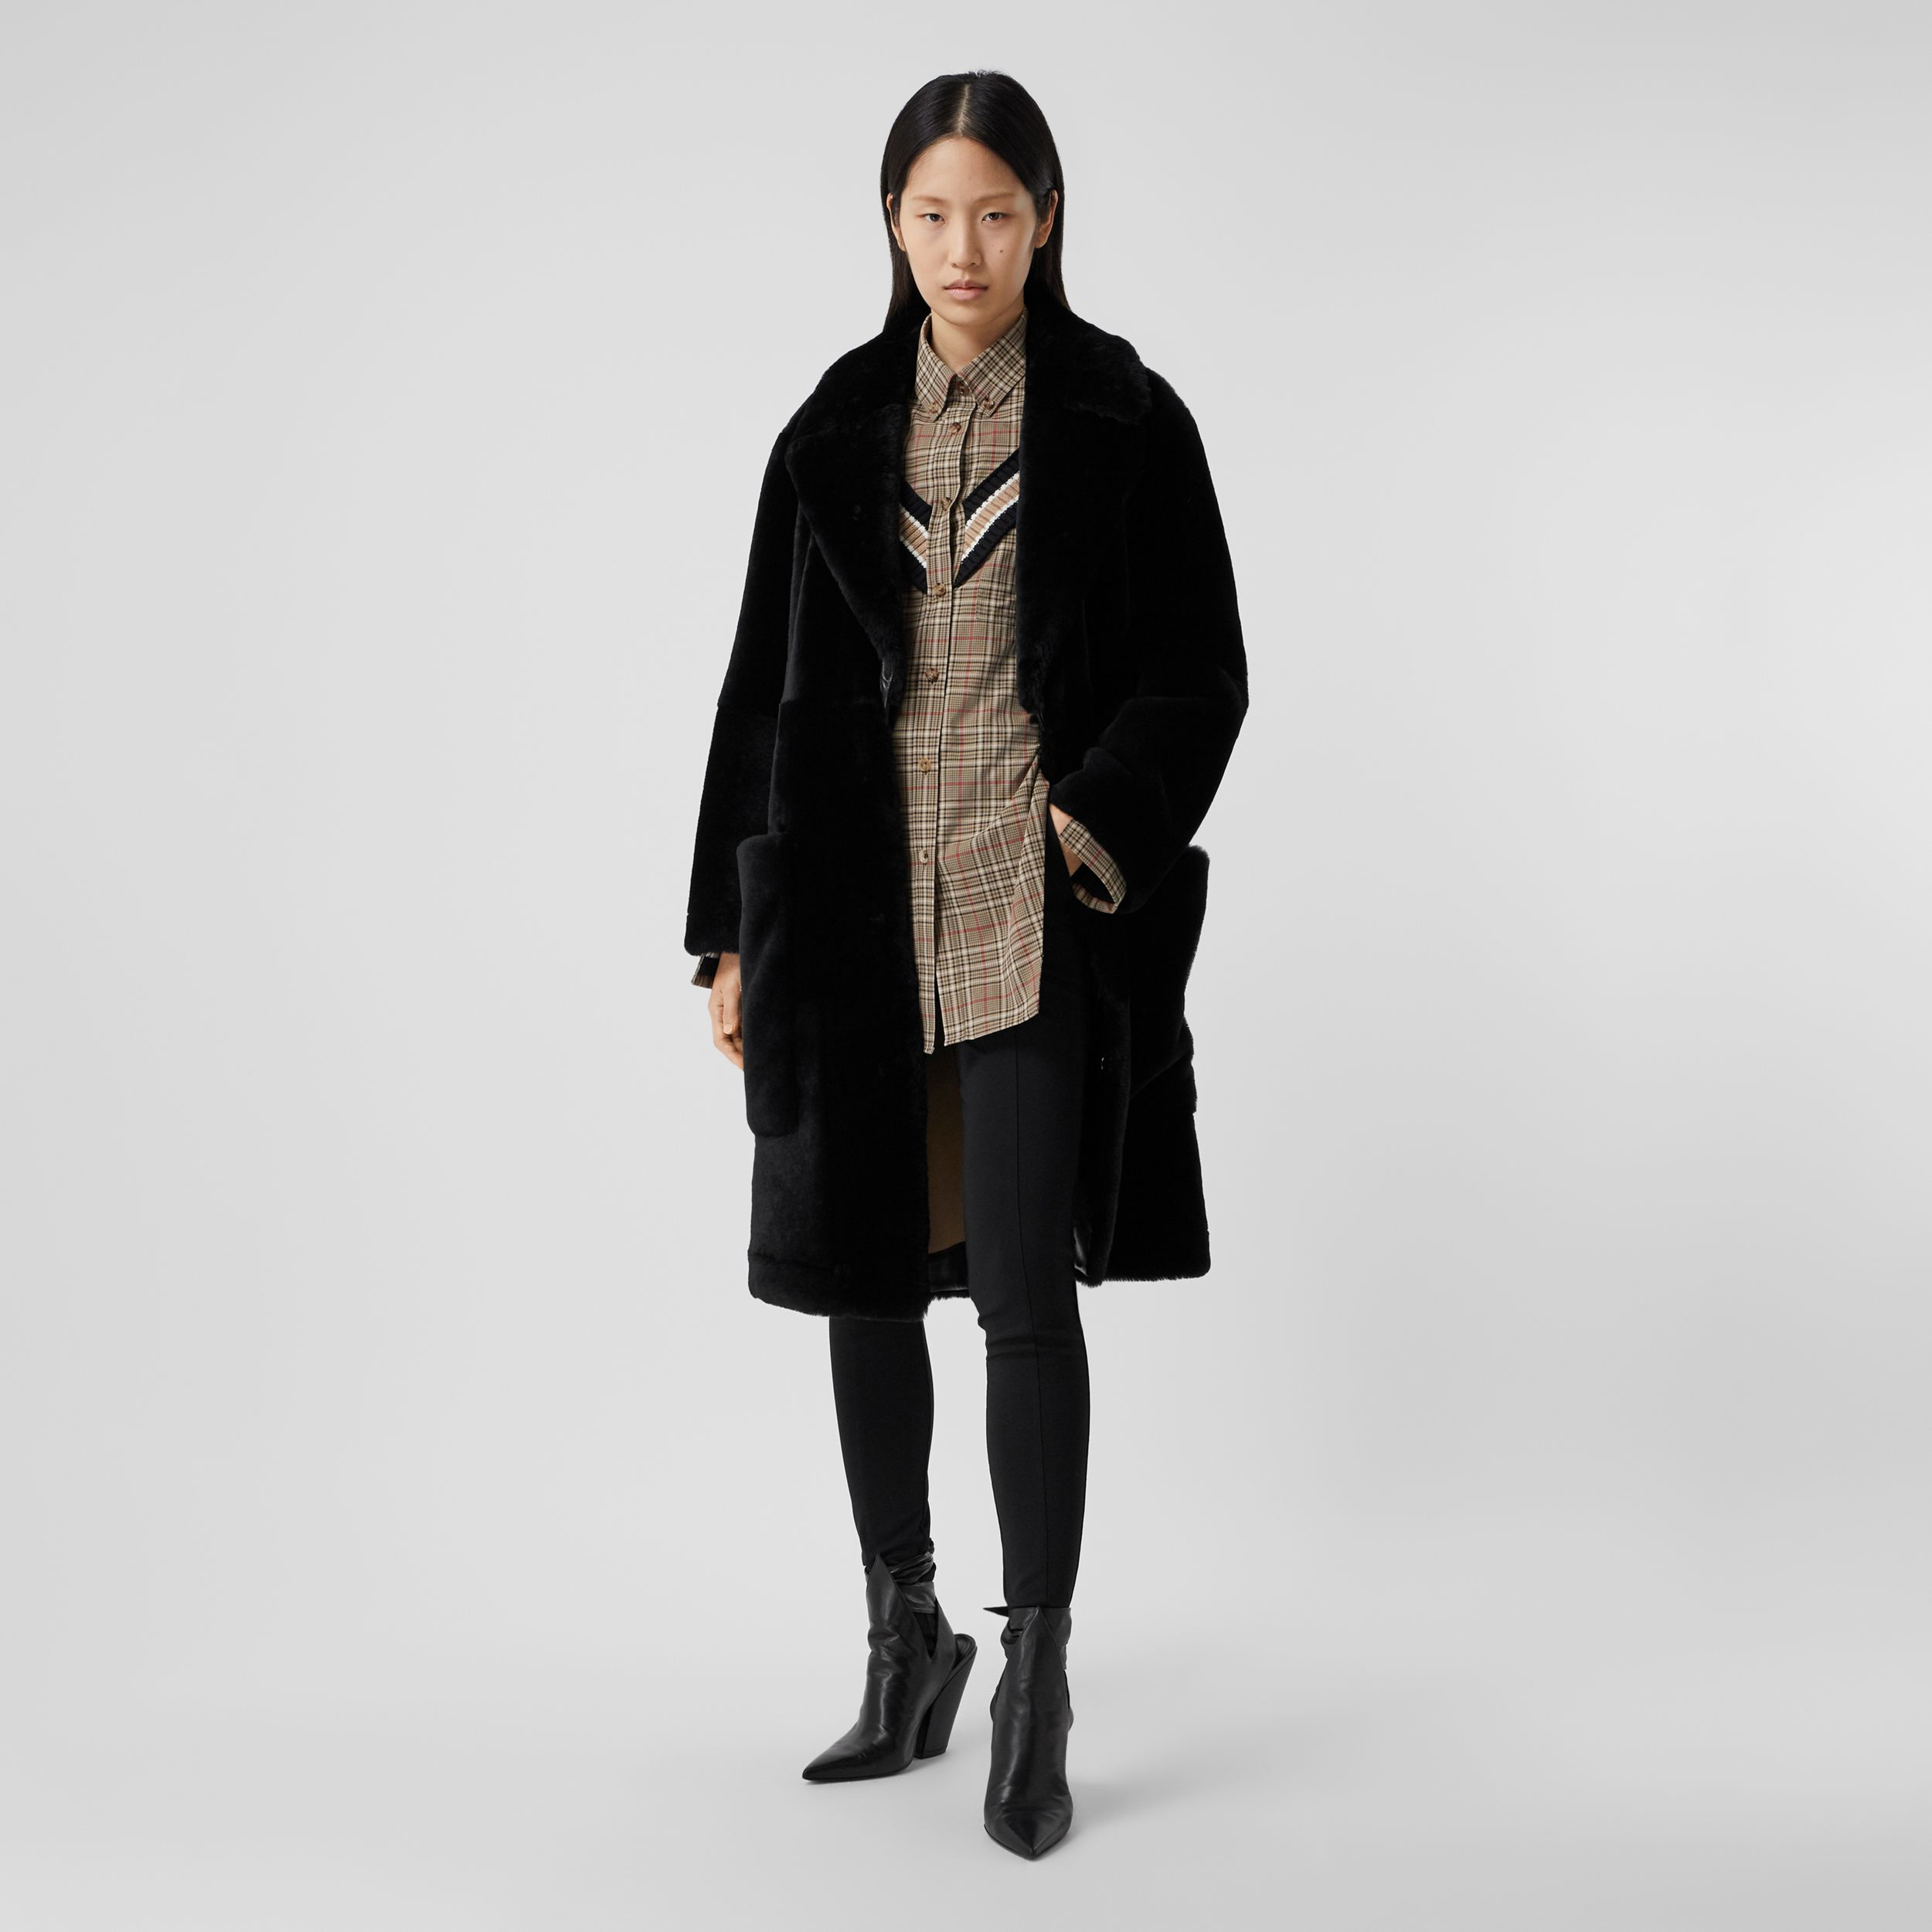 Lambskin Trim Shearling Tailored Coat in Black - Women | Burberry - 1